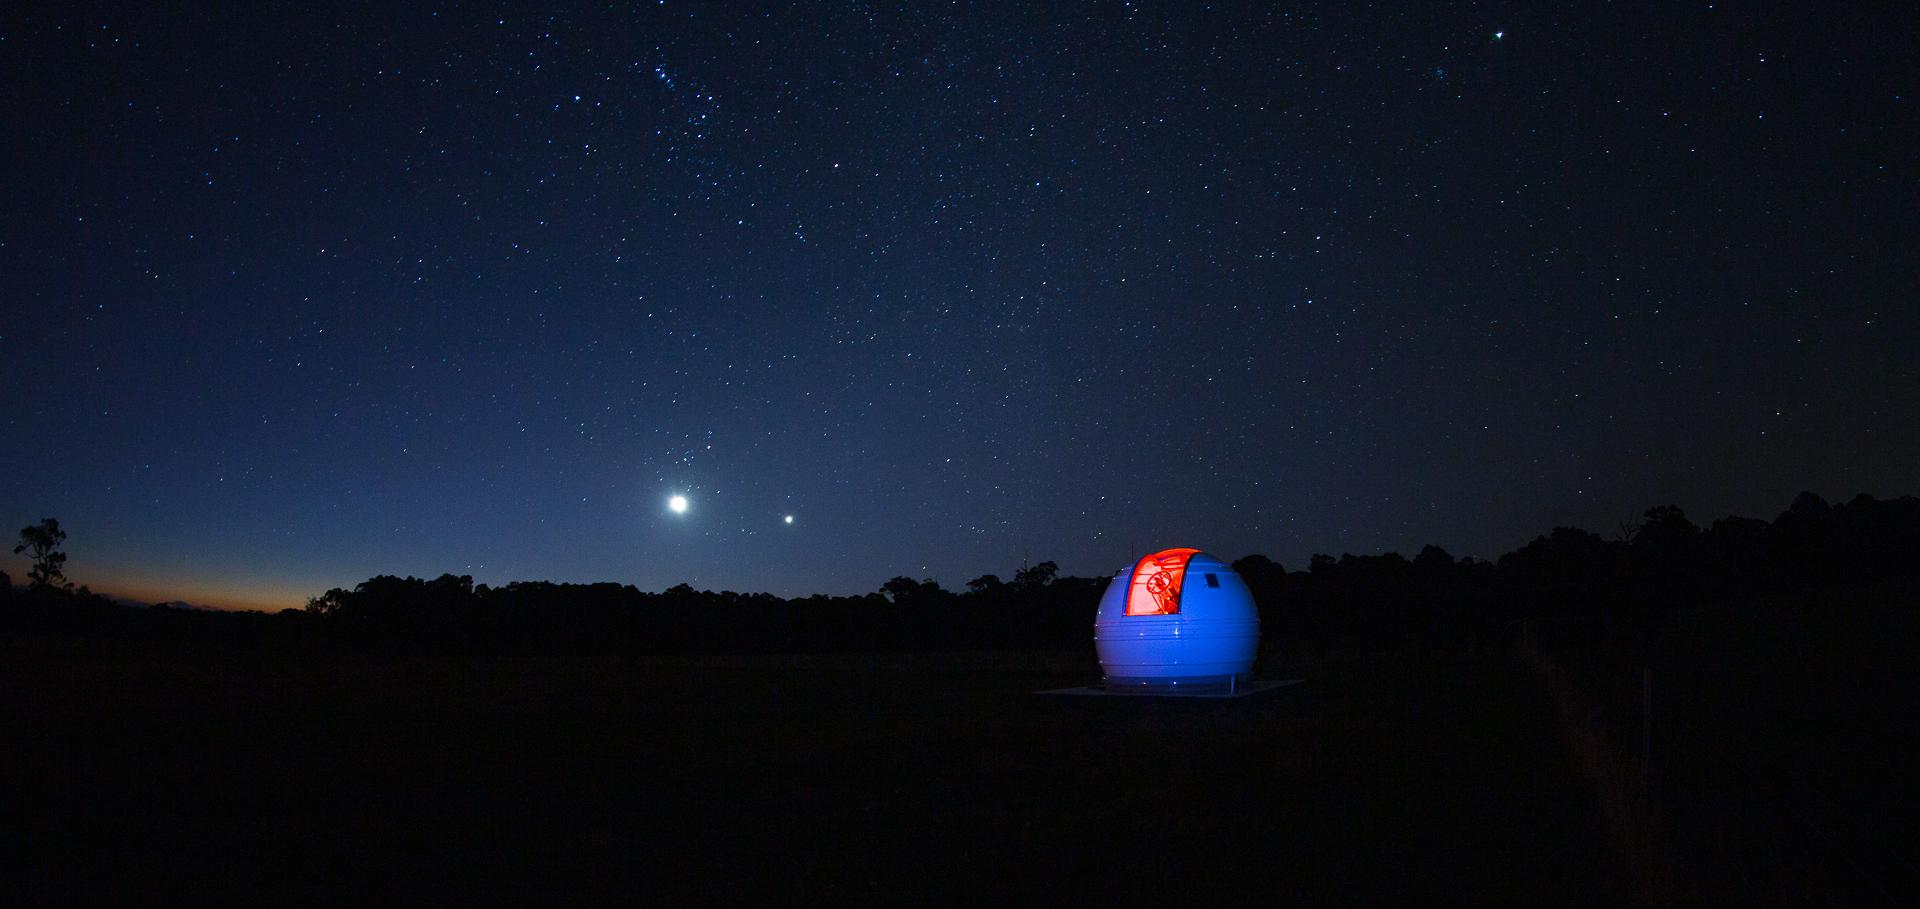 A Global Jet Watch observatory looks out on the night sky.